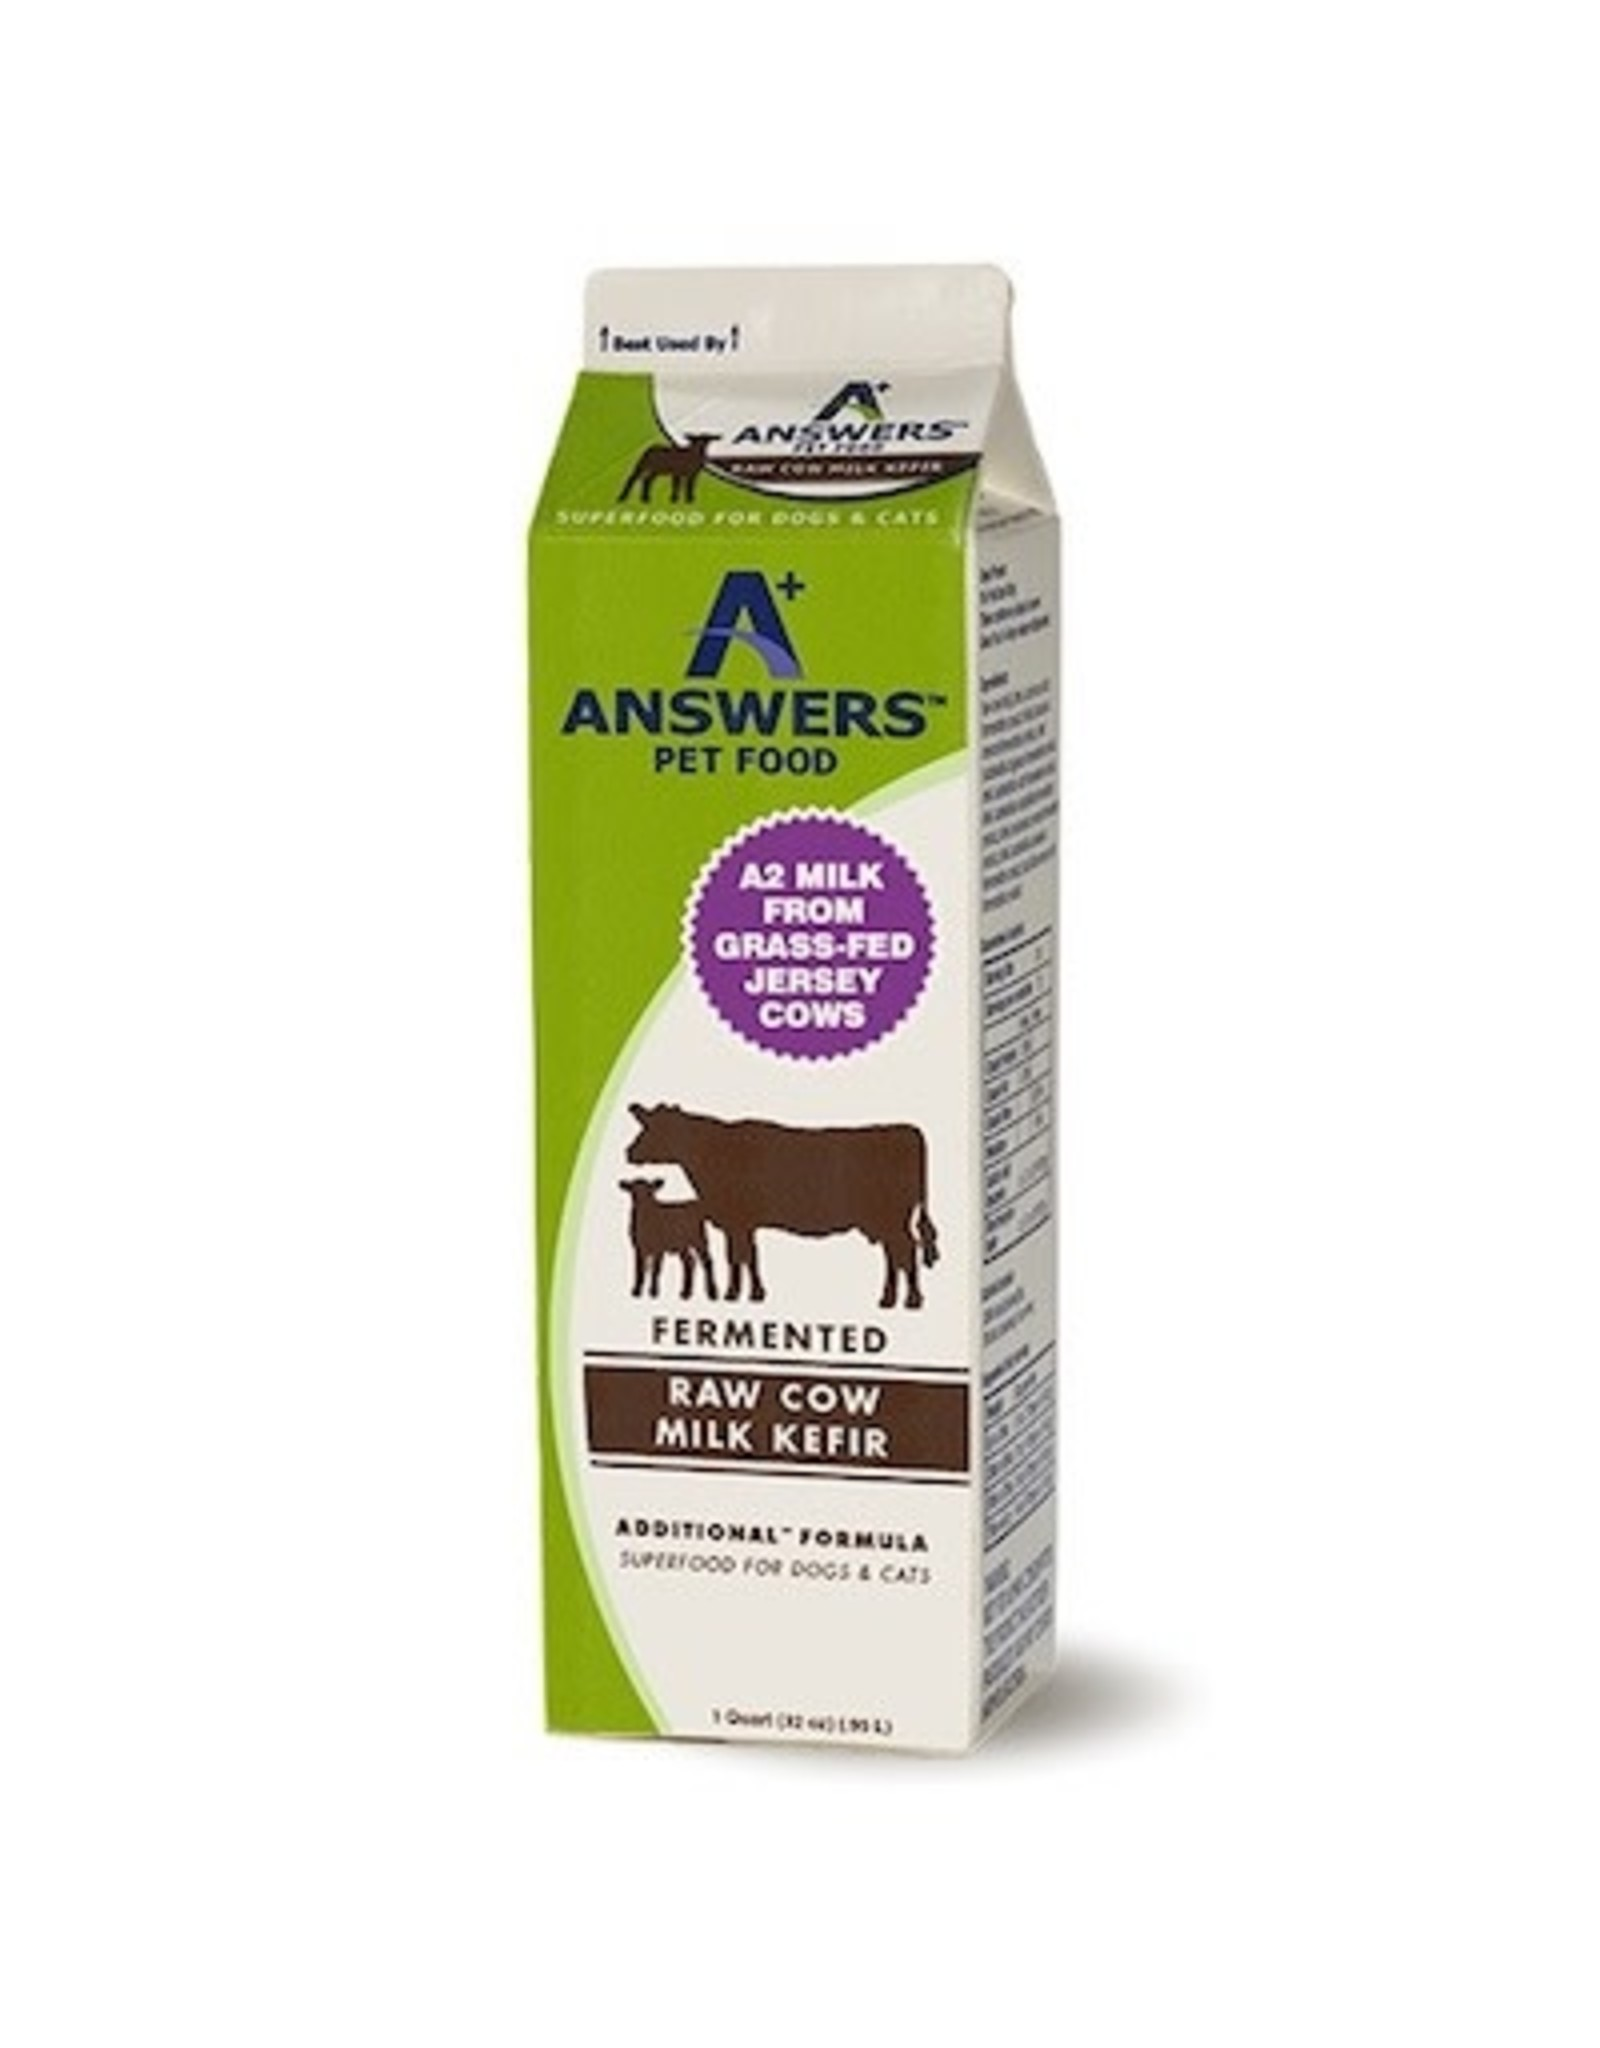 Answers Pet Food ANSWERS FERMENTED RAW COW MILK KEFIR